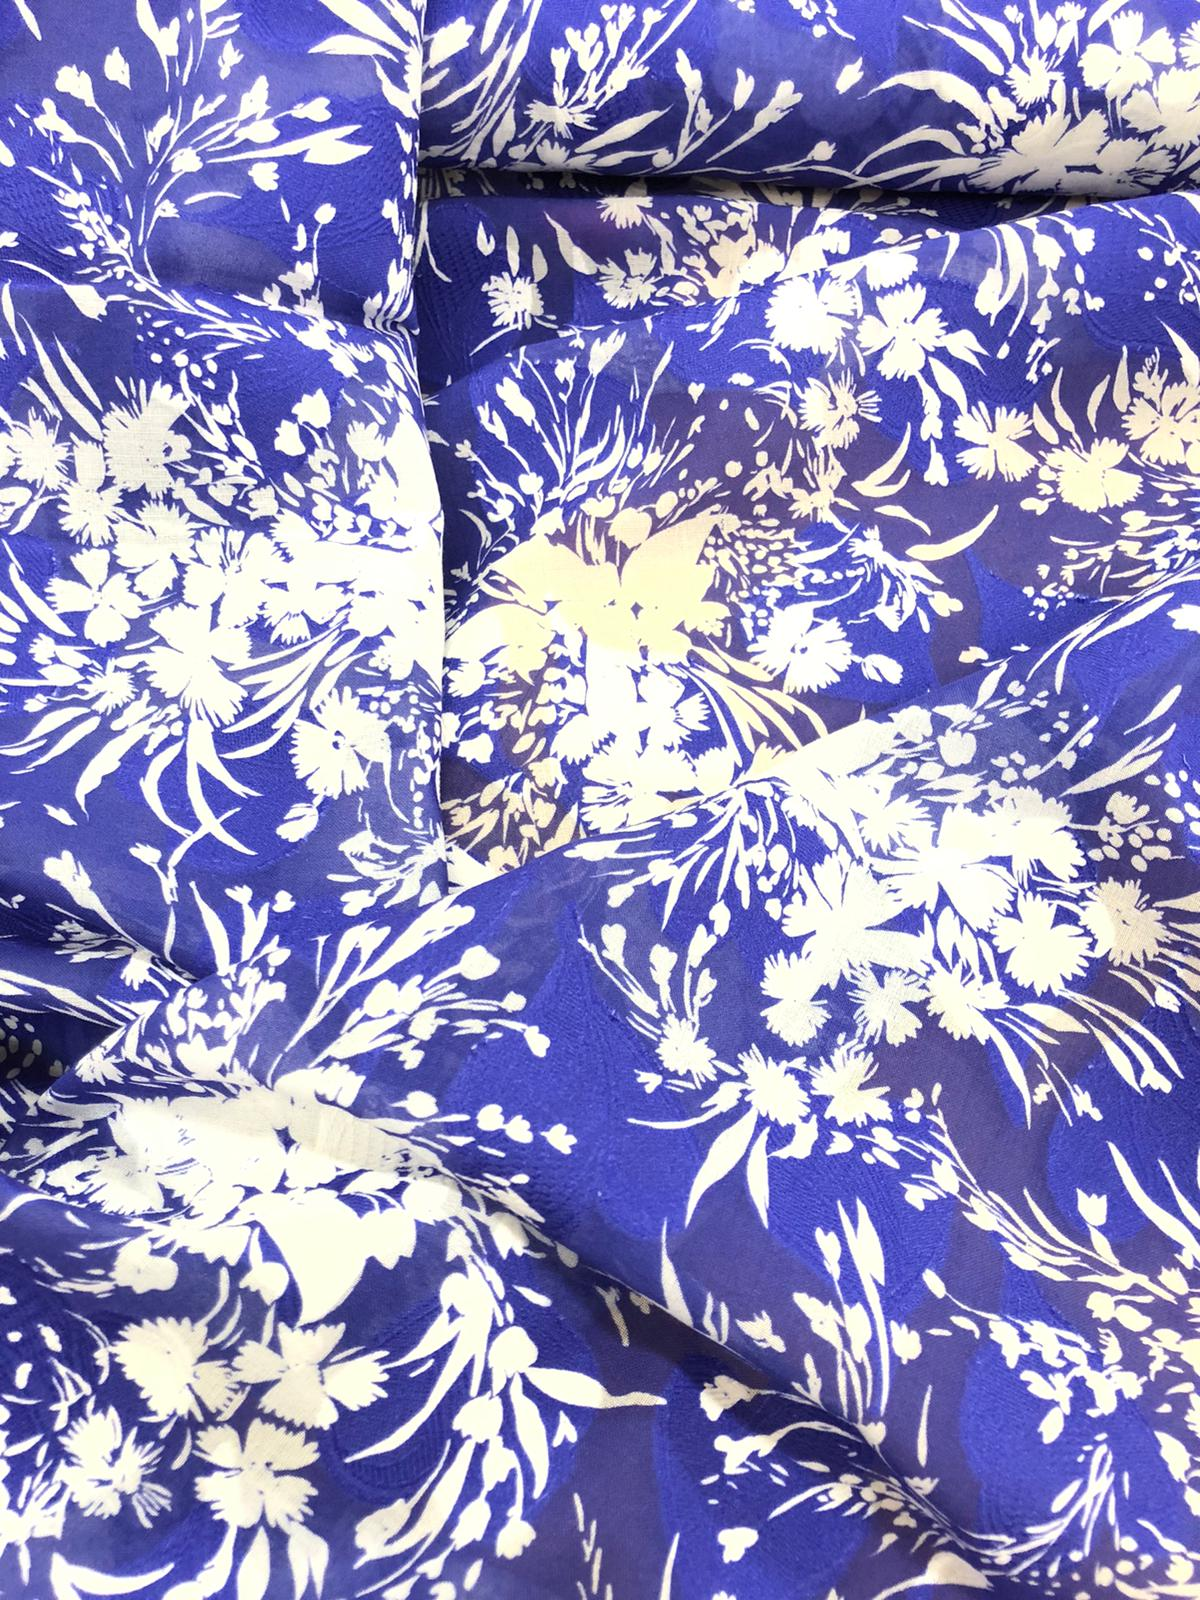 blue and white print on cotton fabric